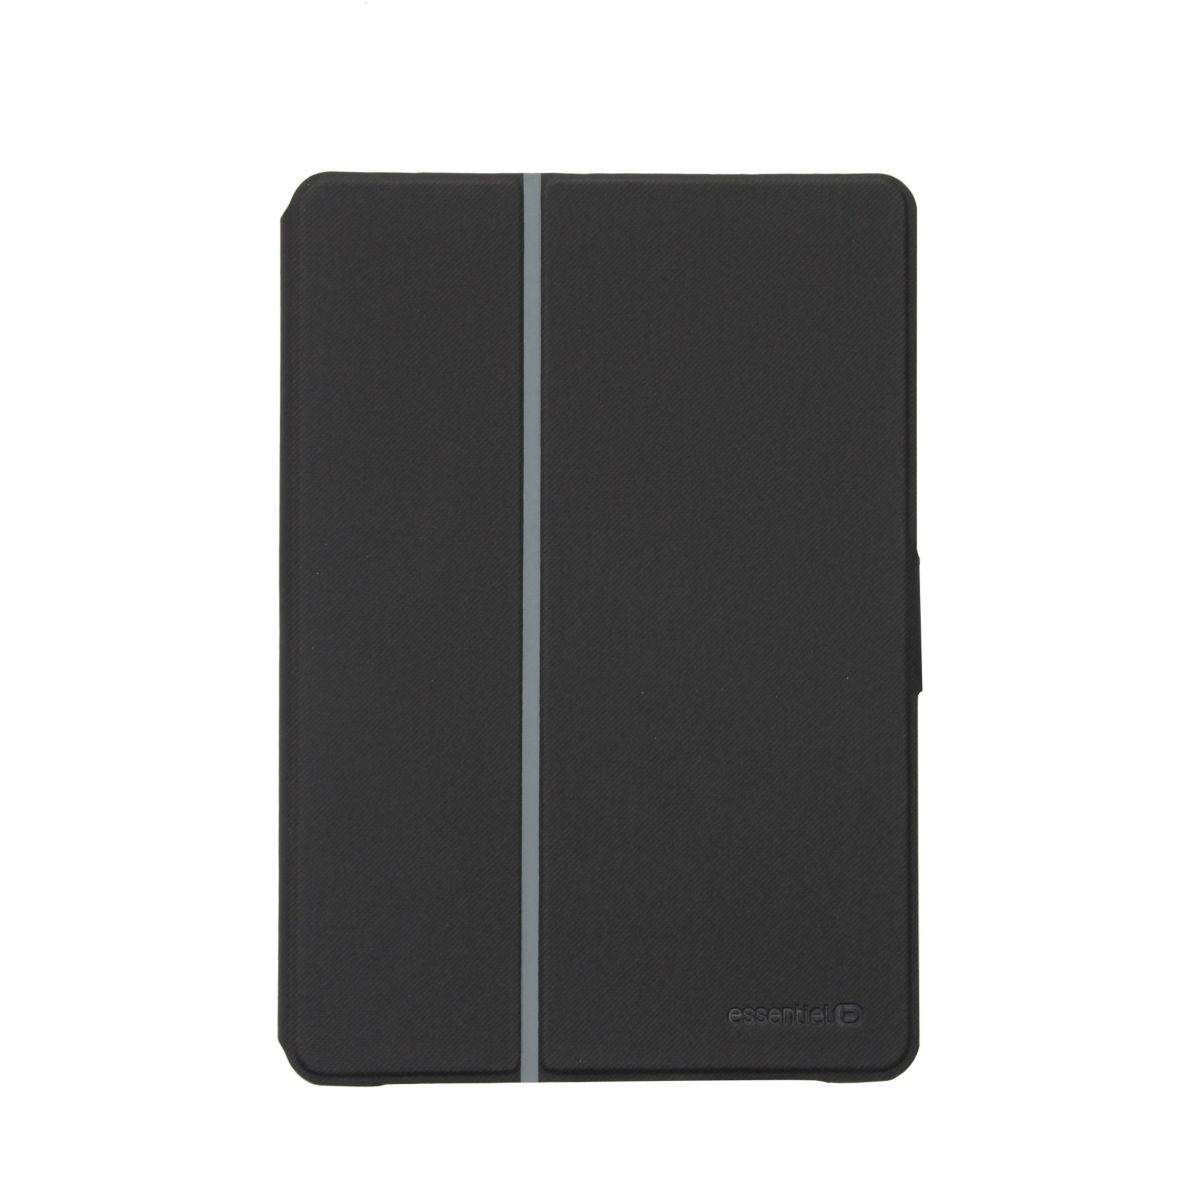 Etui ESSENTIELB iPad Air 2 rotatif noir (photo)